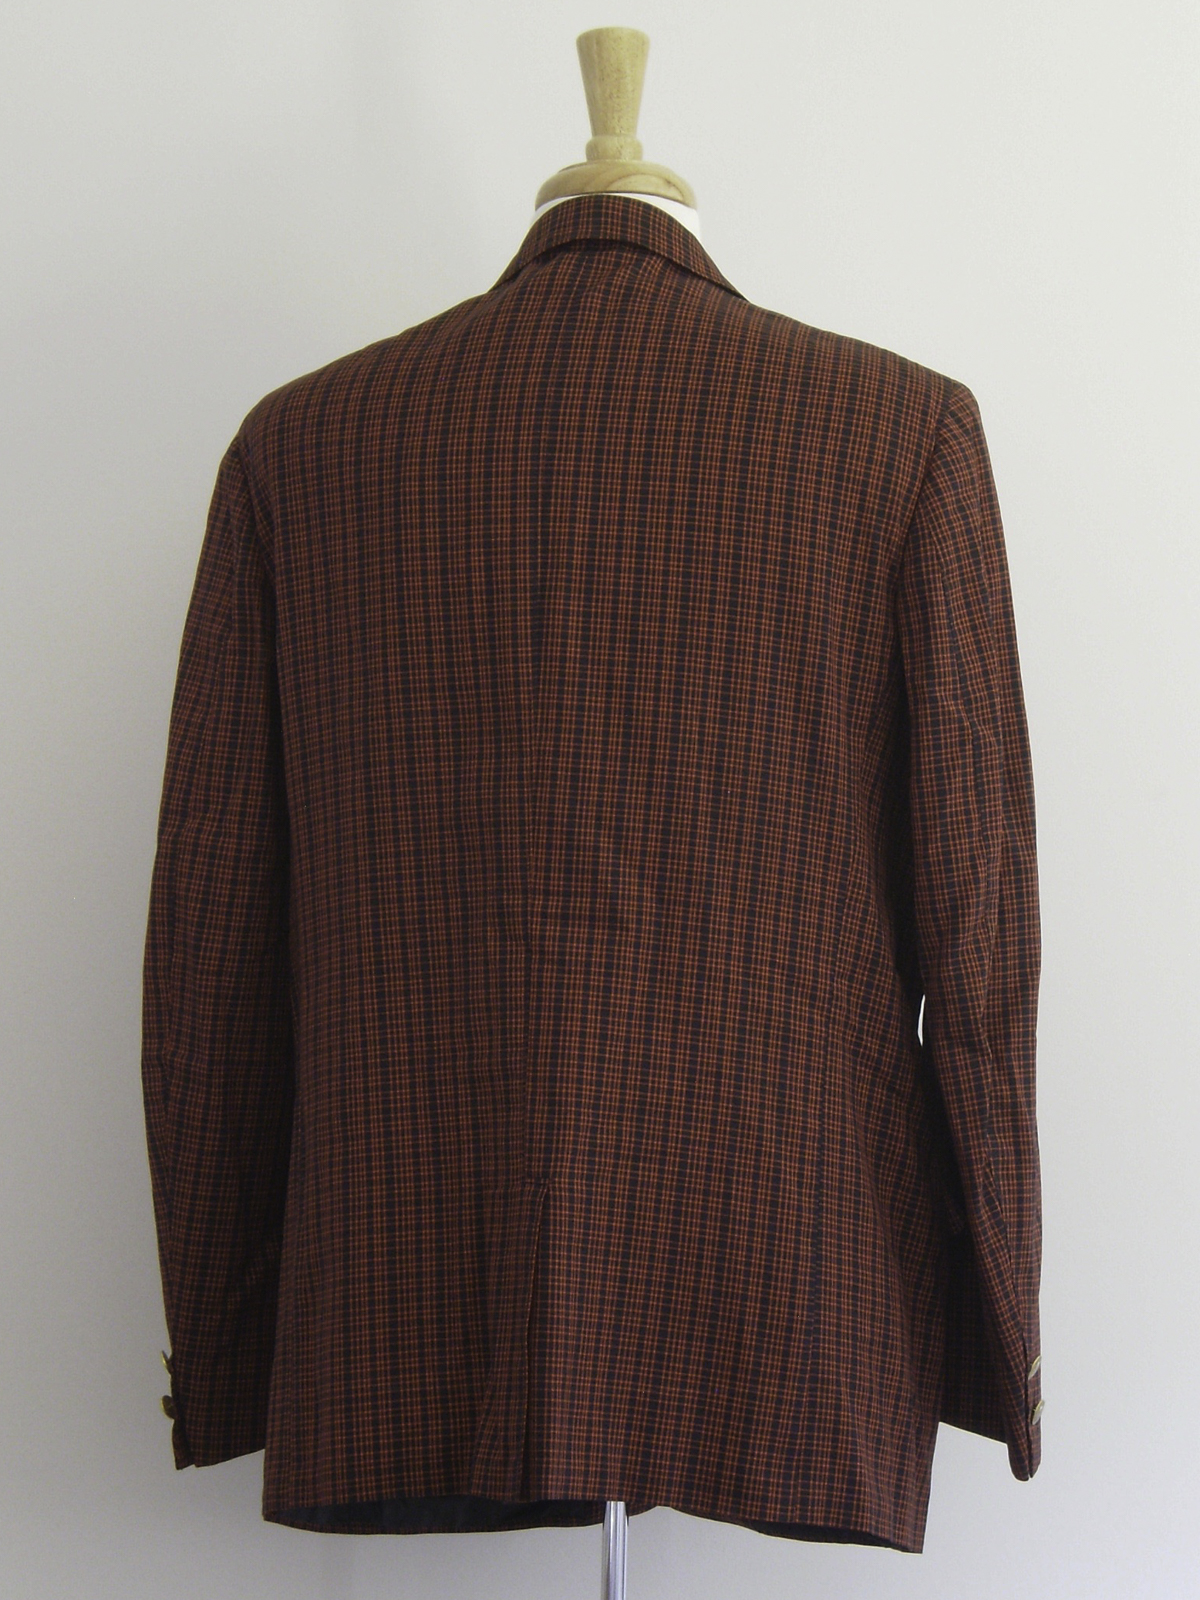 Reunion Jacket 1922 Variation 3 Rear